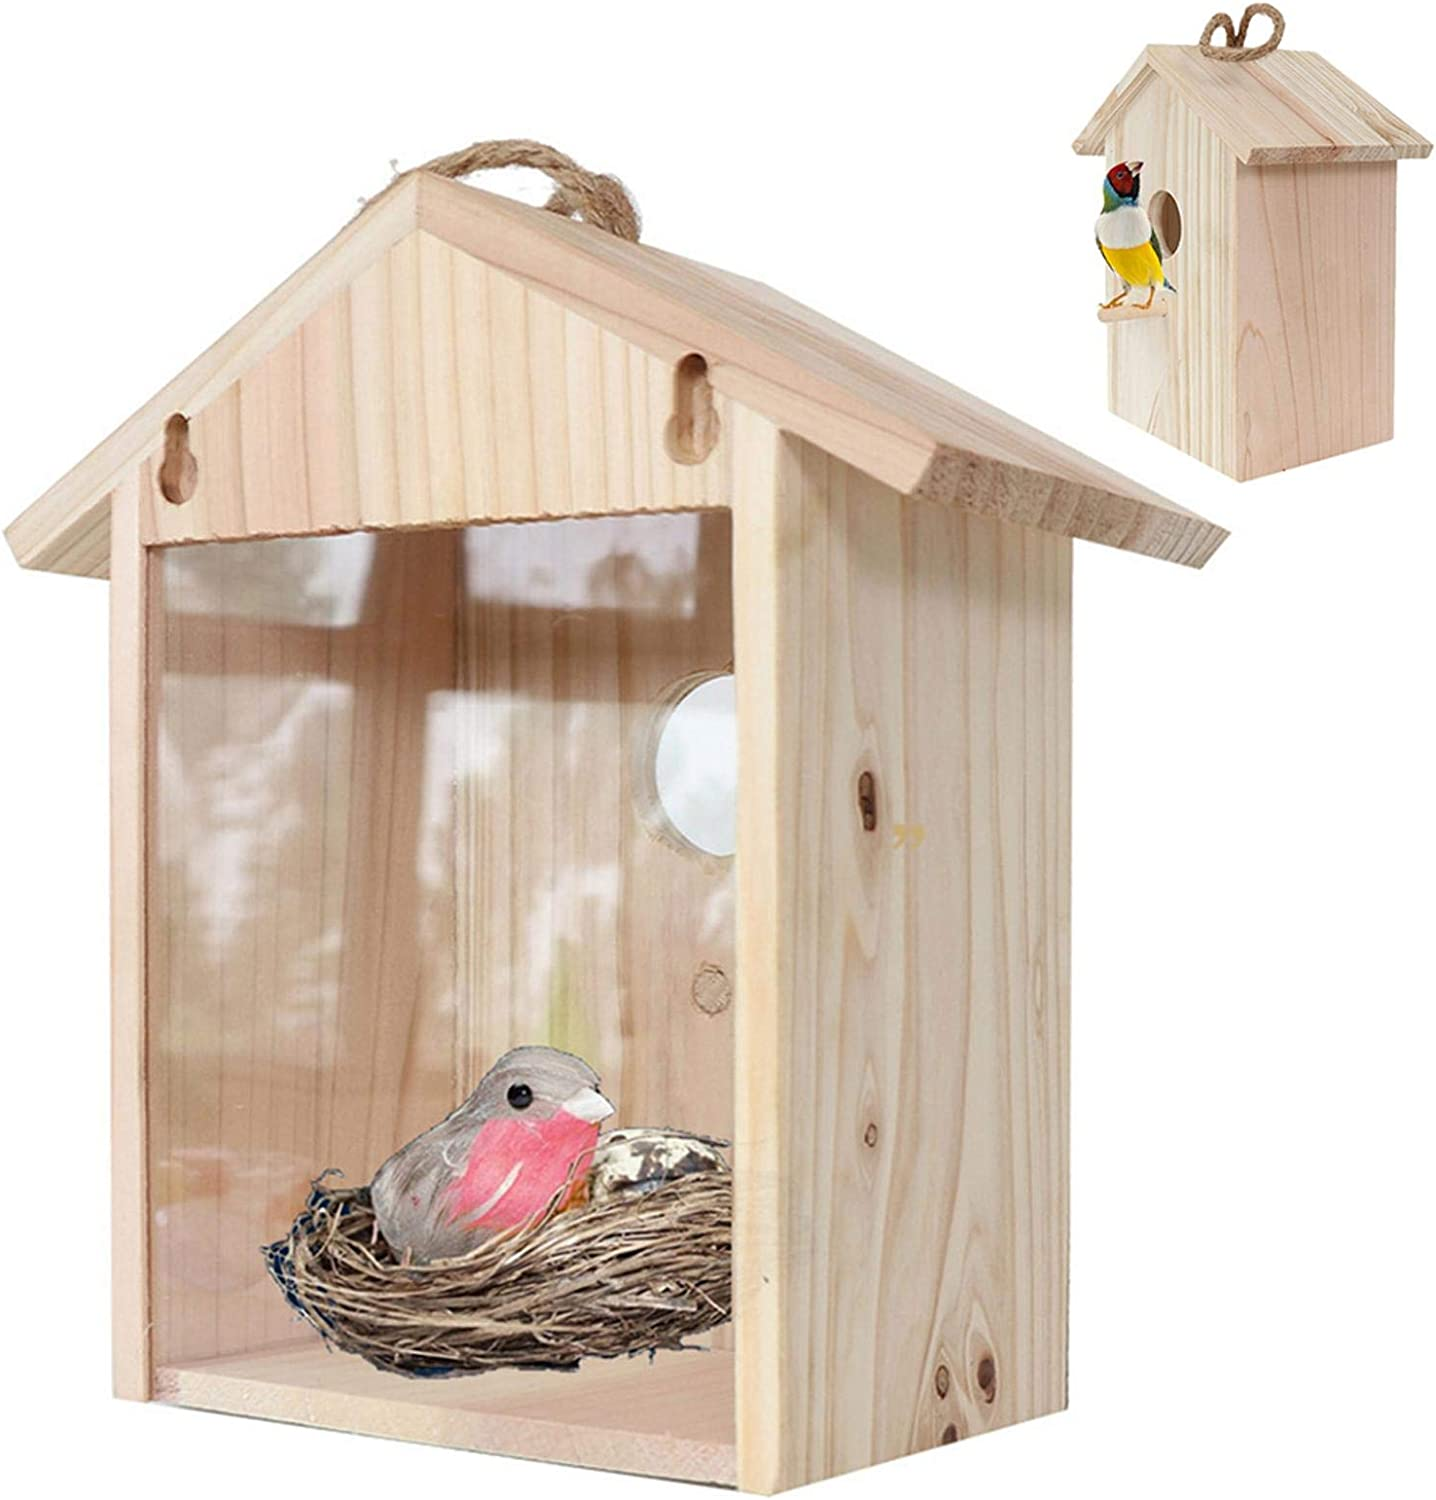 Bird Feeders Houses Max 87% OFF With Garden Cups Ranking TOP18 Outdoor Suction